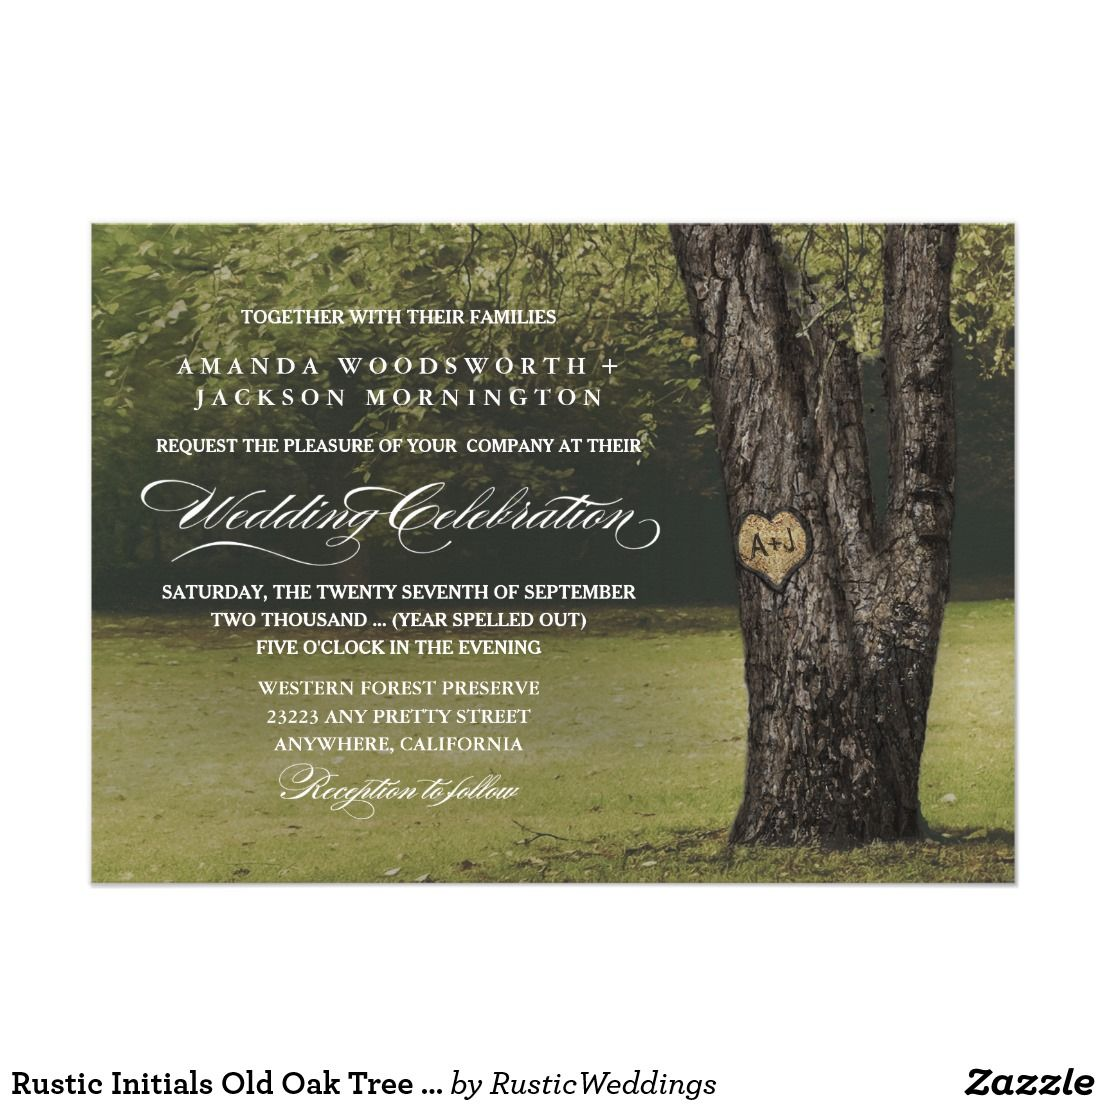 Rustic Initials Old Oak Tree Wedding Invitations Country Wedding